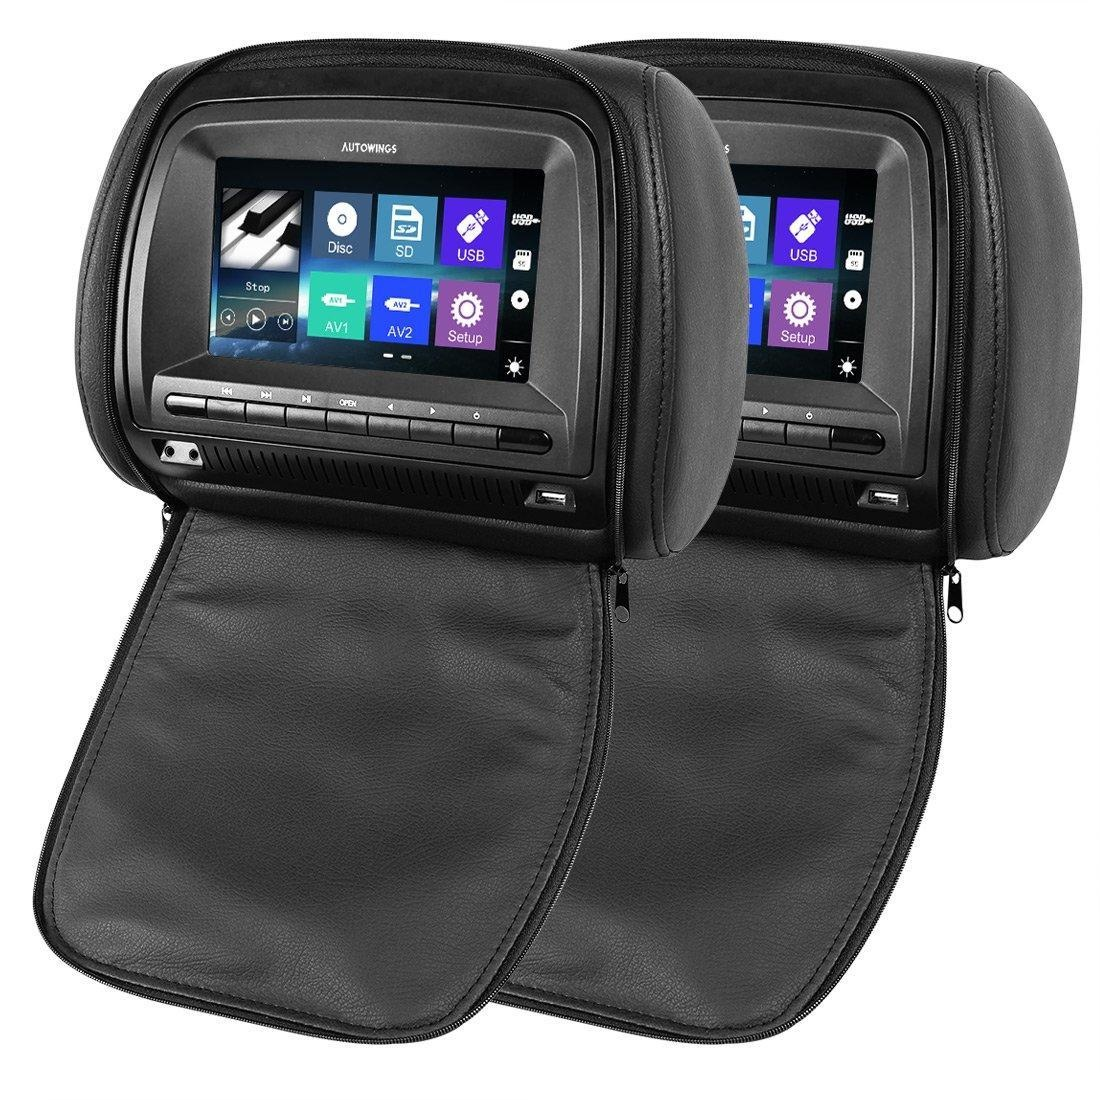 AUTOWINGS 2x 7 inch Car Headrest Monitor DVD Players Capacitive Touch Screen Leather Cover with Zipper Support Full Format DVD/VCD/MP4/WMV/RMVB/MOV/MKV/AVI Full HD 1080P Video USB SD FM IR (Black)